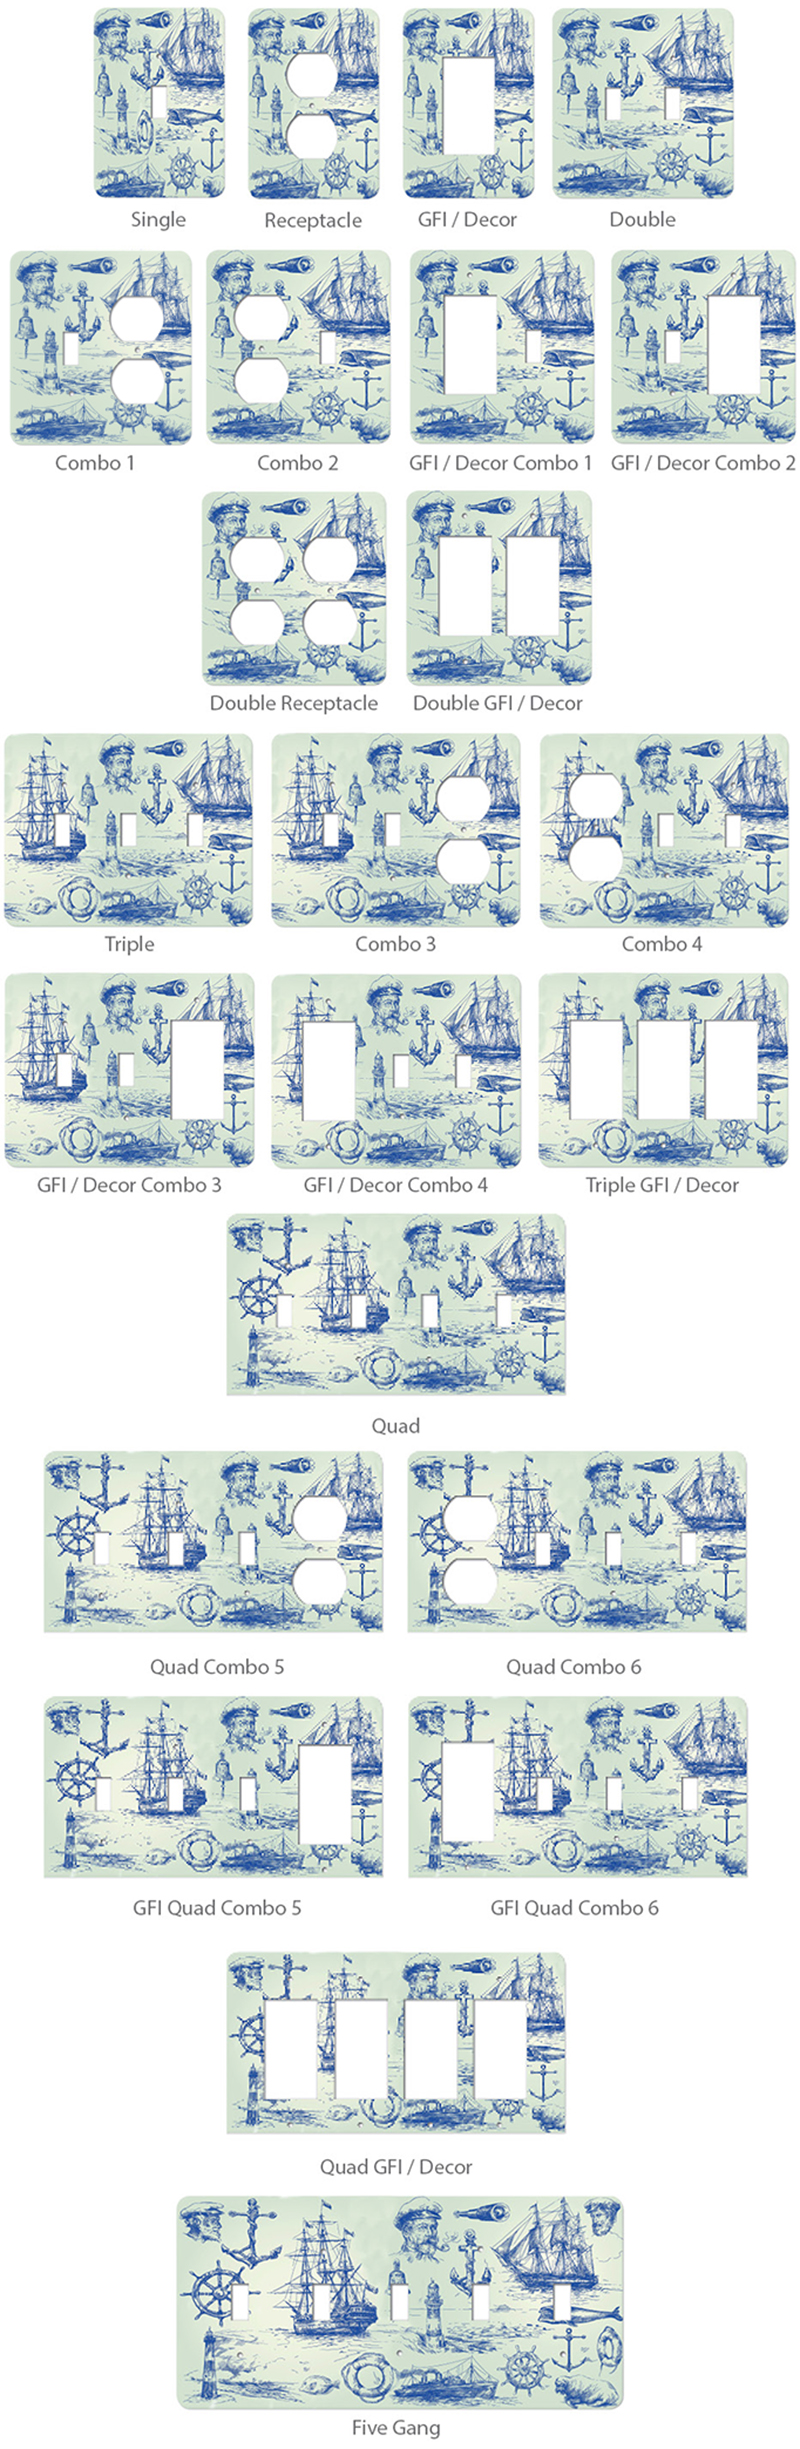 Switchplate Gallery - Charming Decorative Light Switch Covers